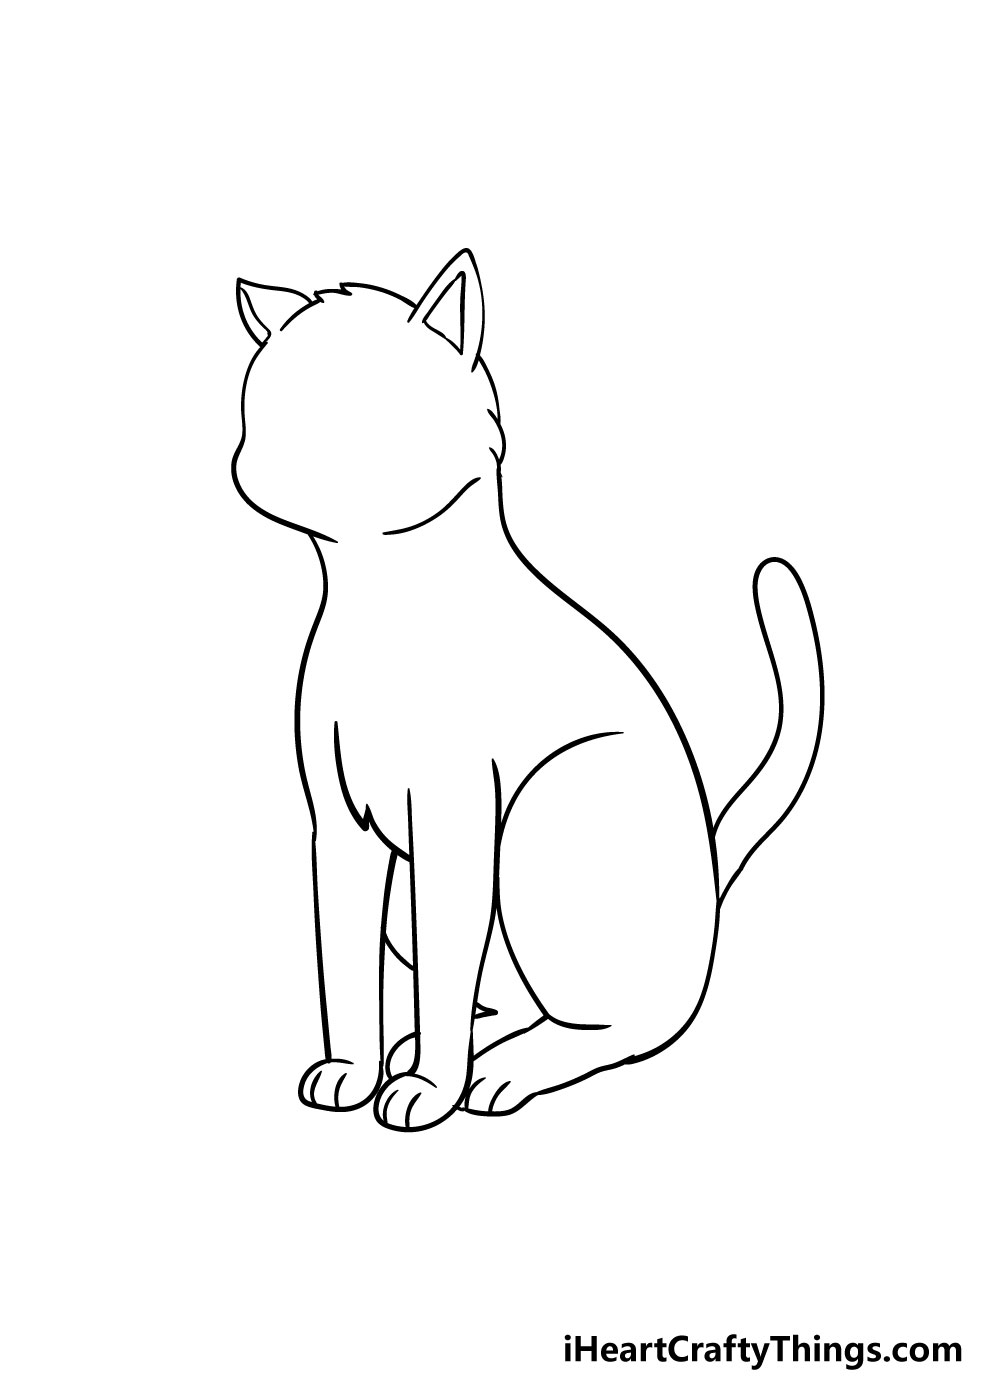 cat drawing step 7